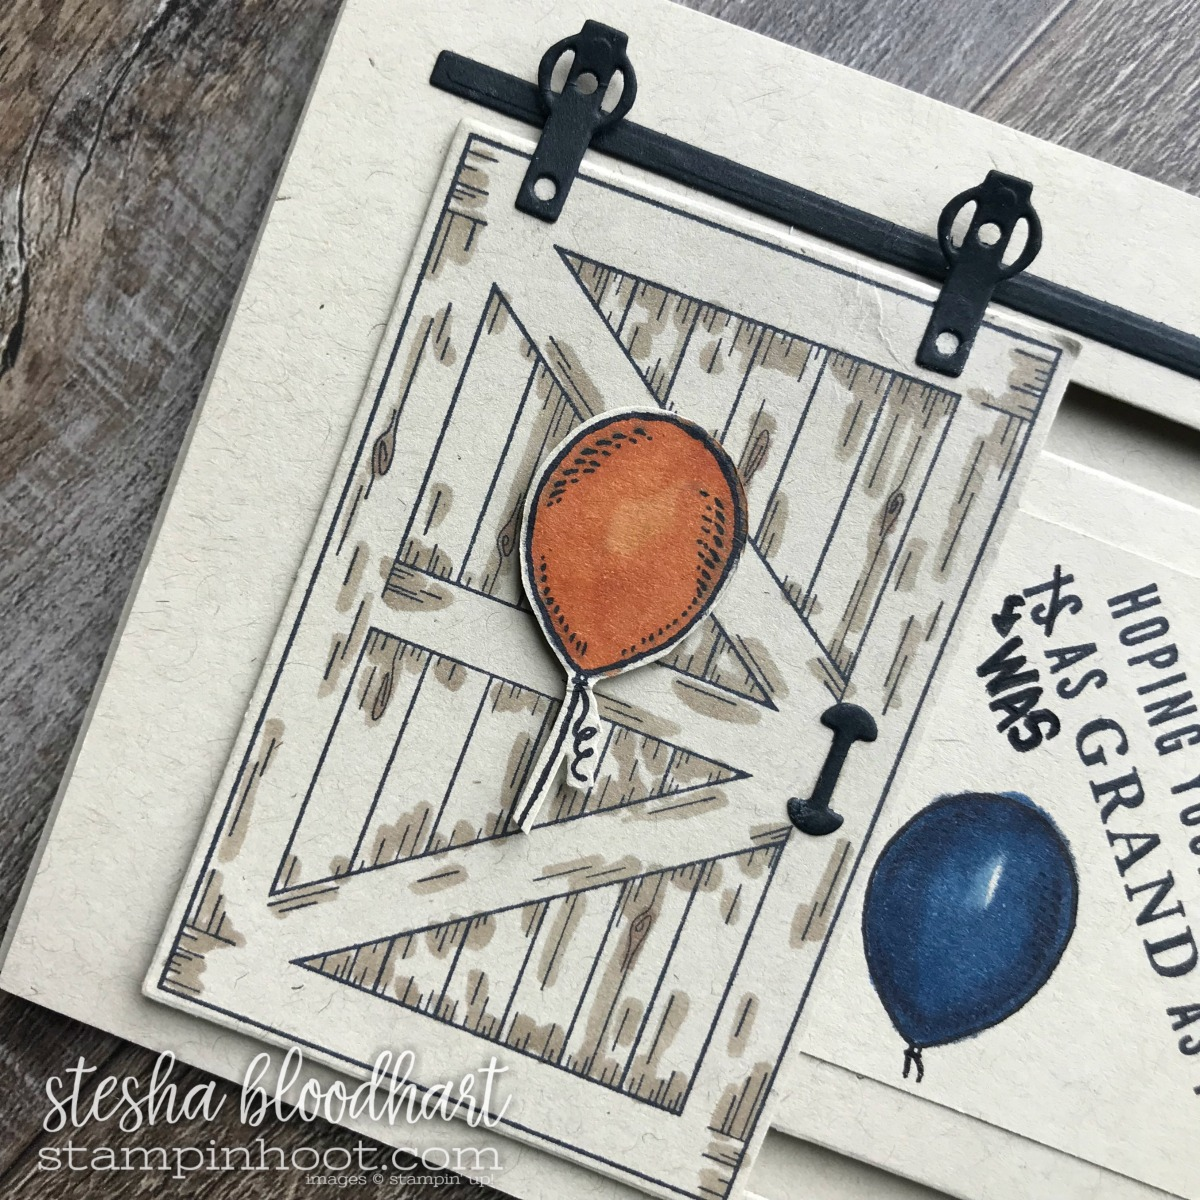 Barn Door Bundle by Stampin' Up! From the 2018 Occasions Catalog. Happy Birthday Card by Stesha Bloodhart, Stampin' Hoot! #steshabloodhart #stampinhoot